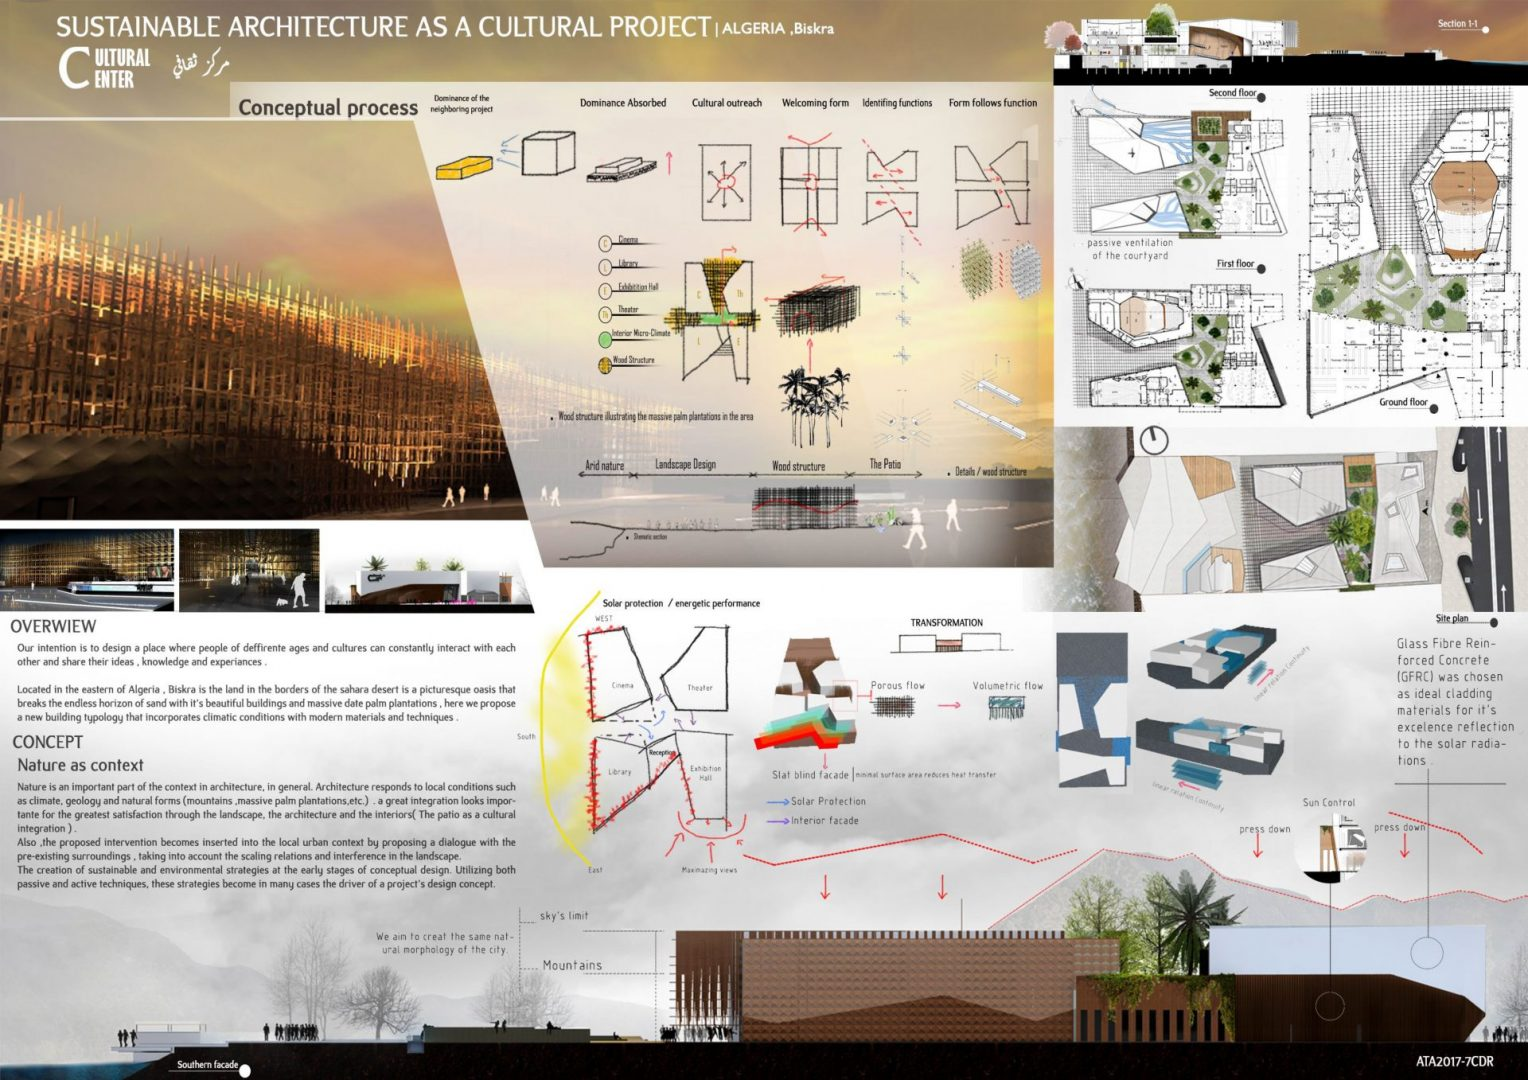 Sustainable architecture as a cultural project Board